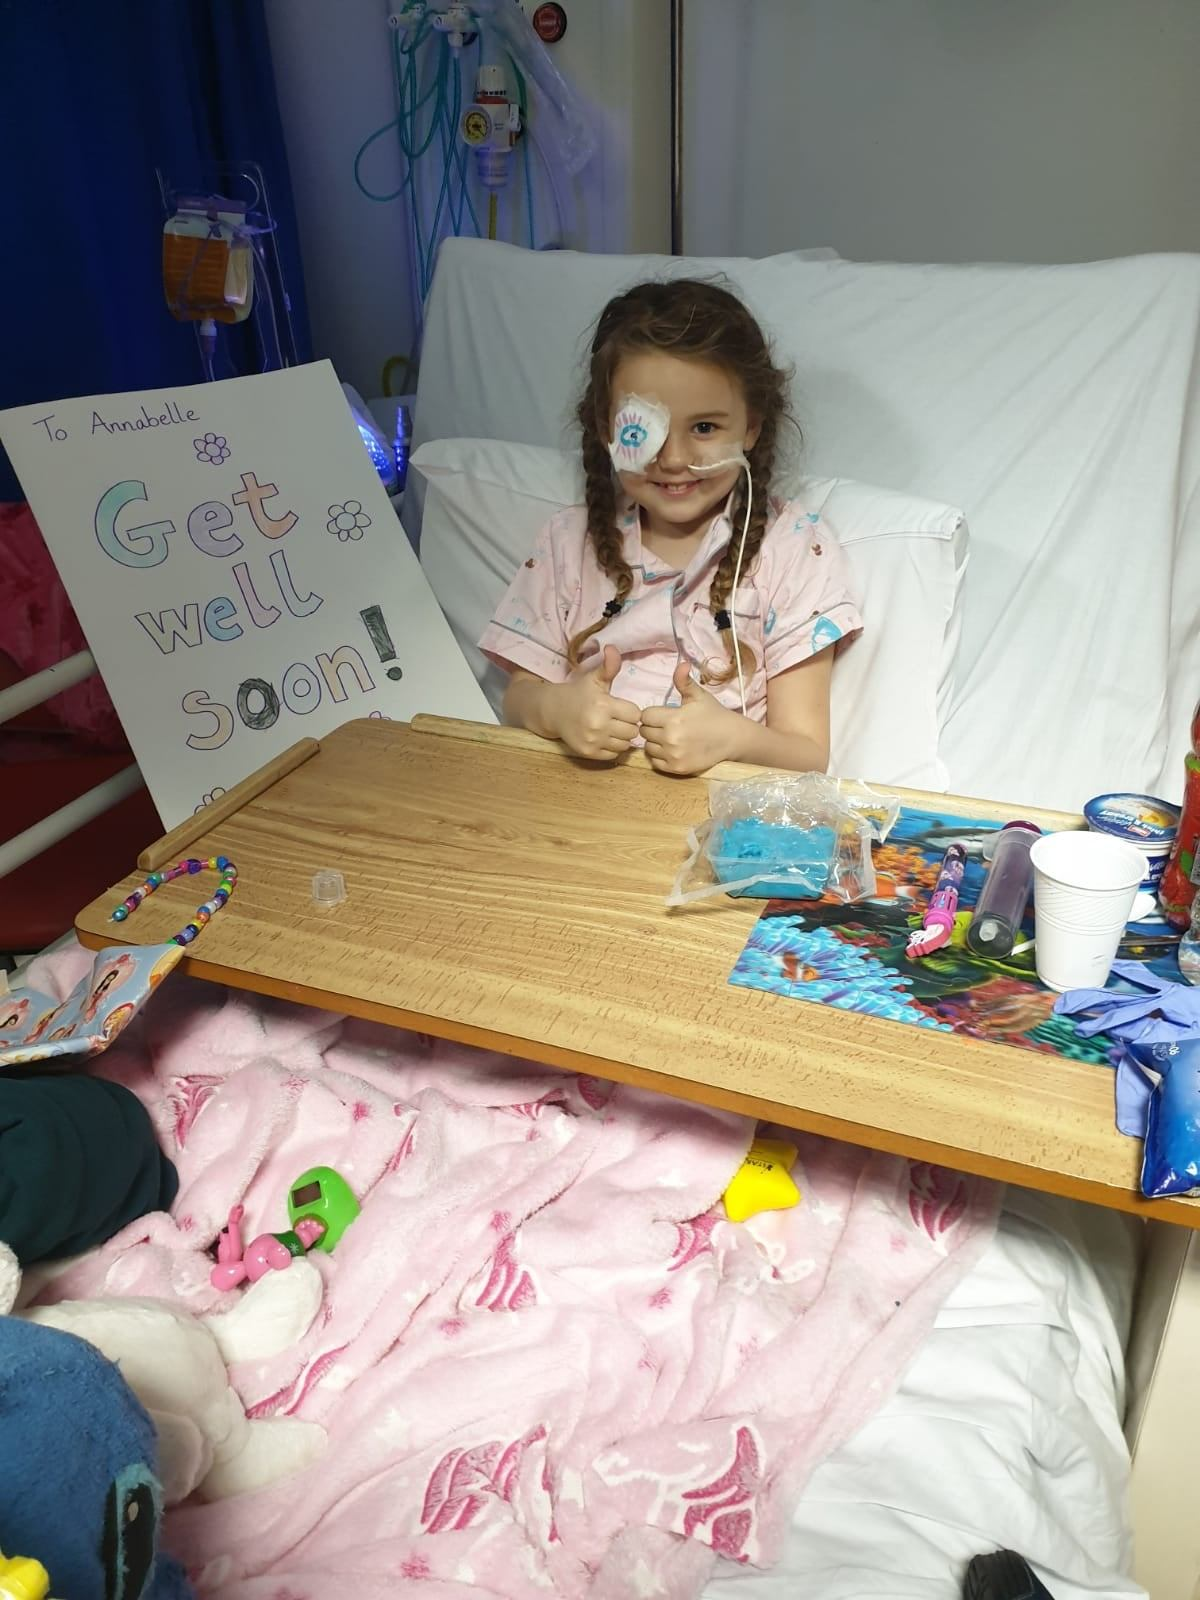 Annabelle couldn't walk or talk for five days after her brain surgery due to complications